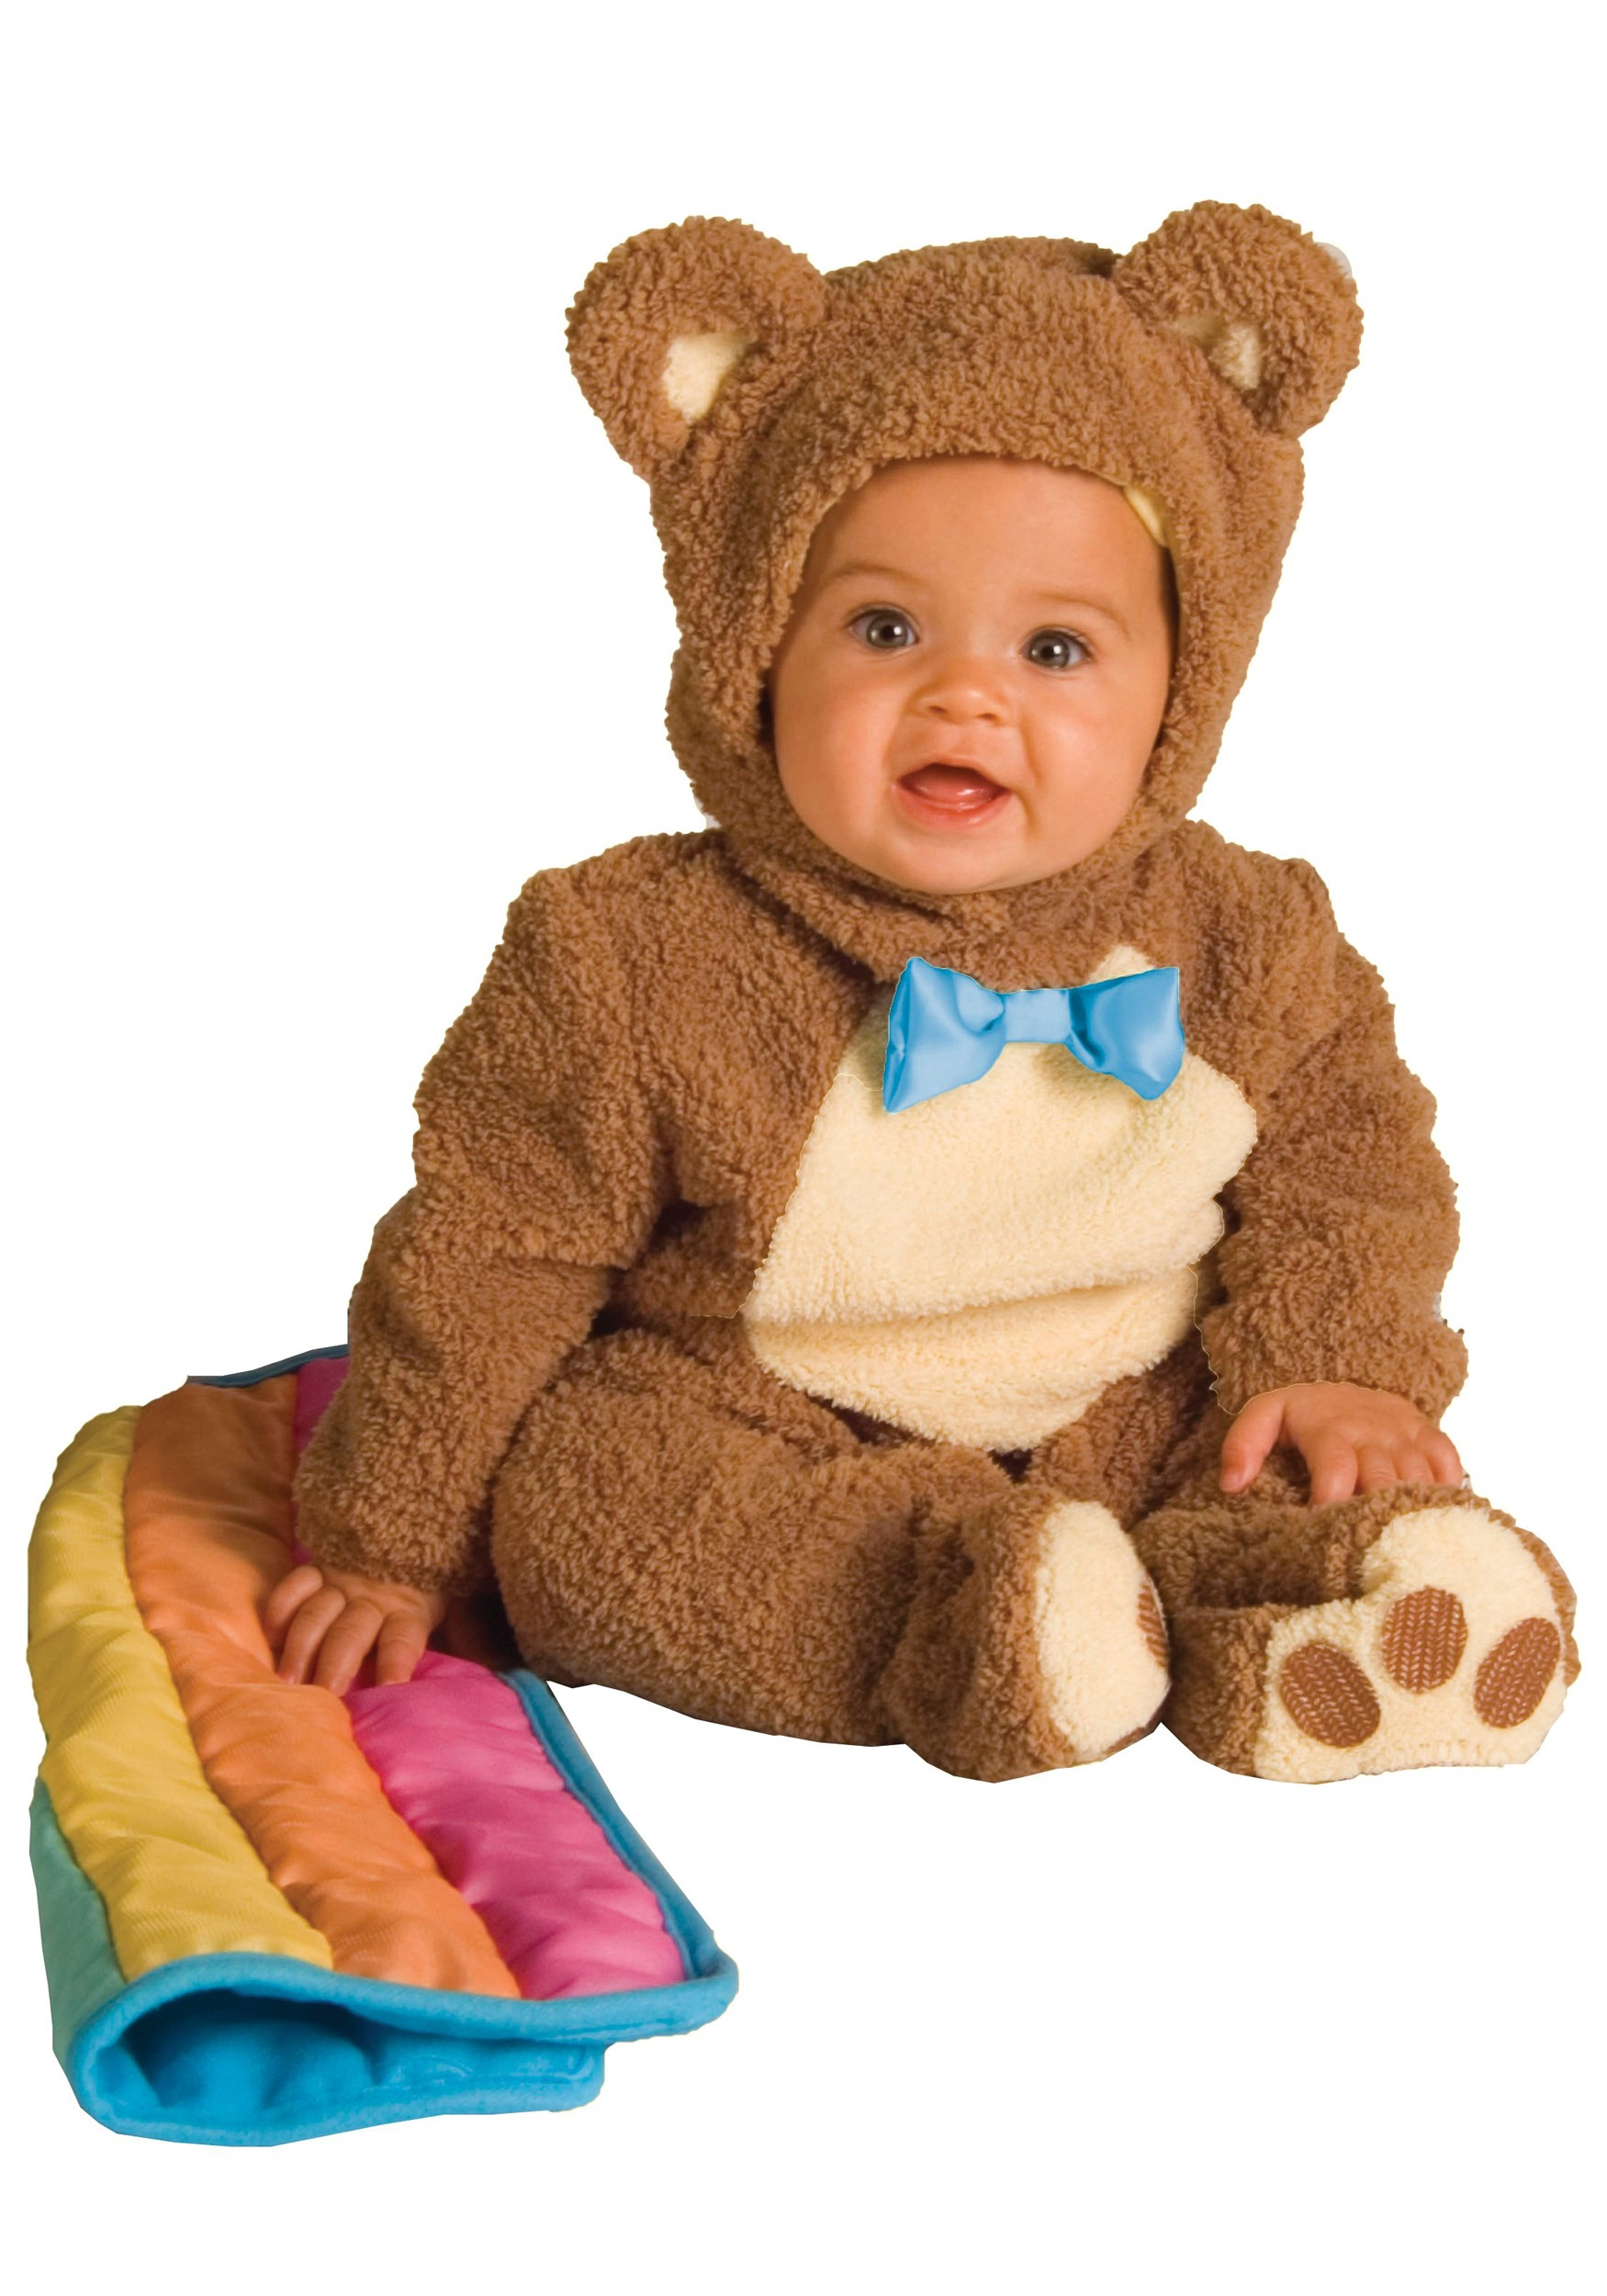 531fa766a659 Infant Bear Costume - Baby Teddy Bear Halloween Costumes